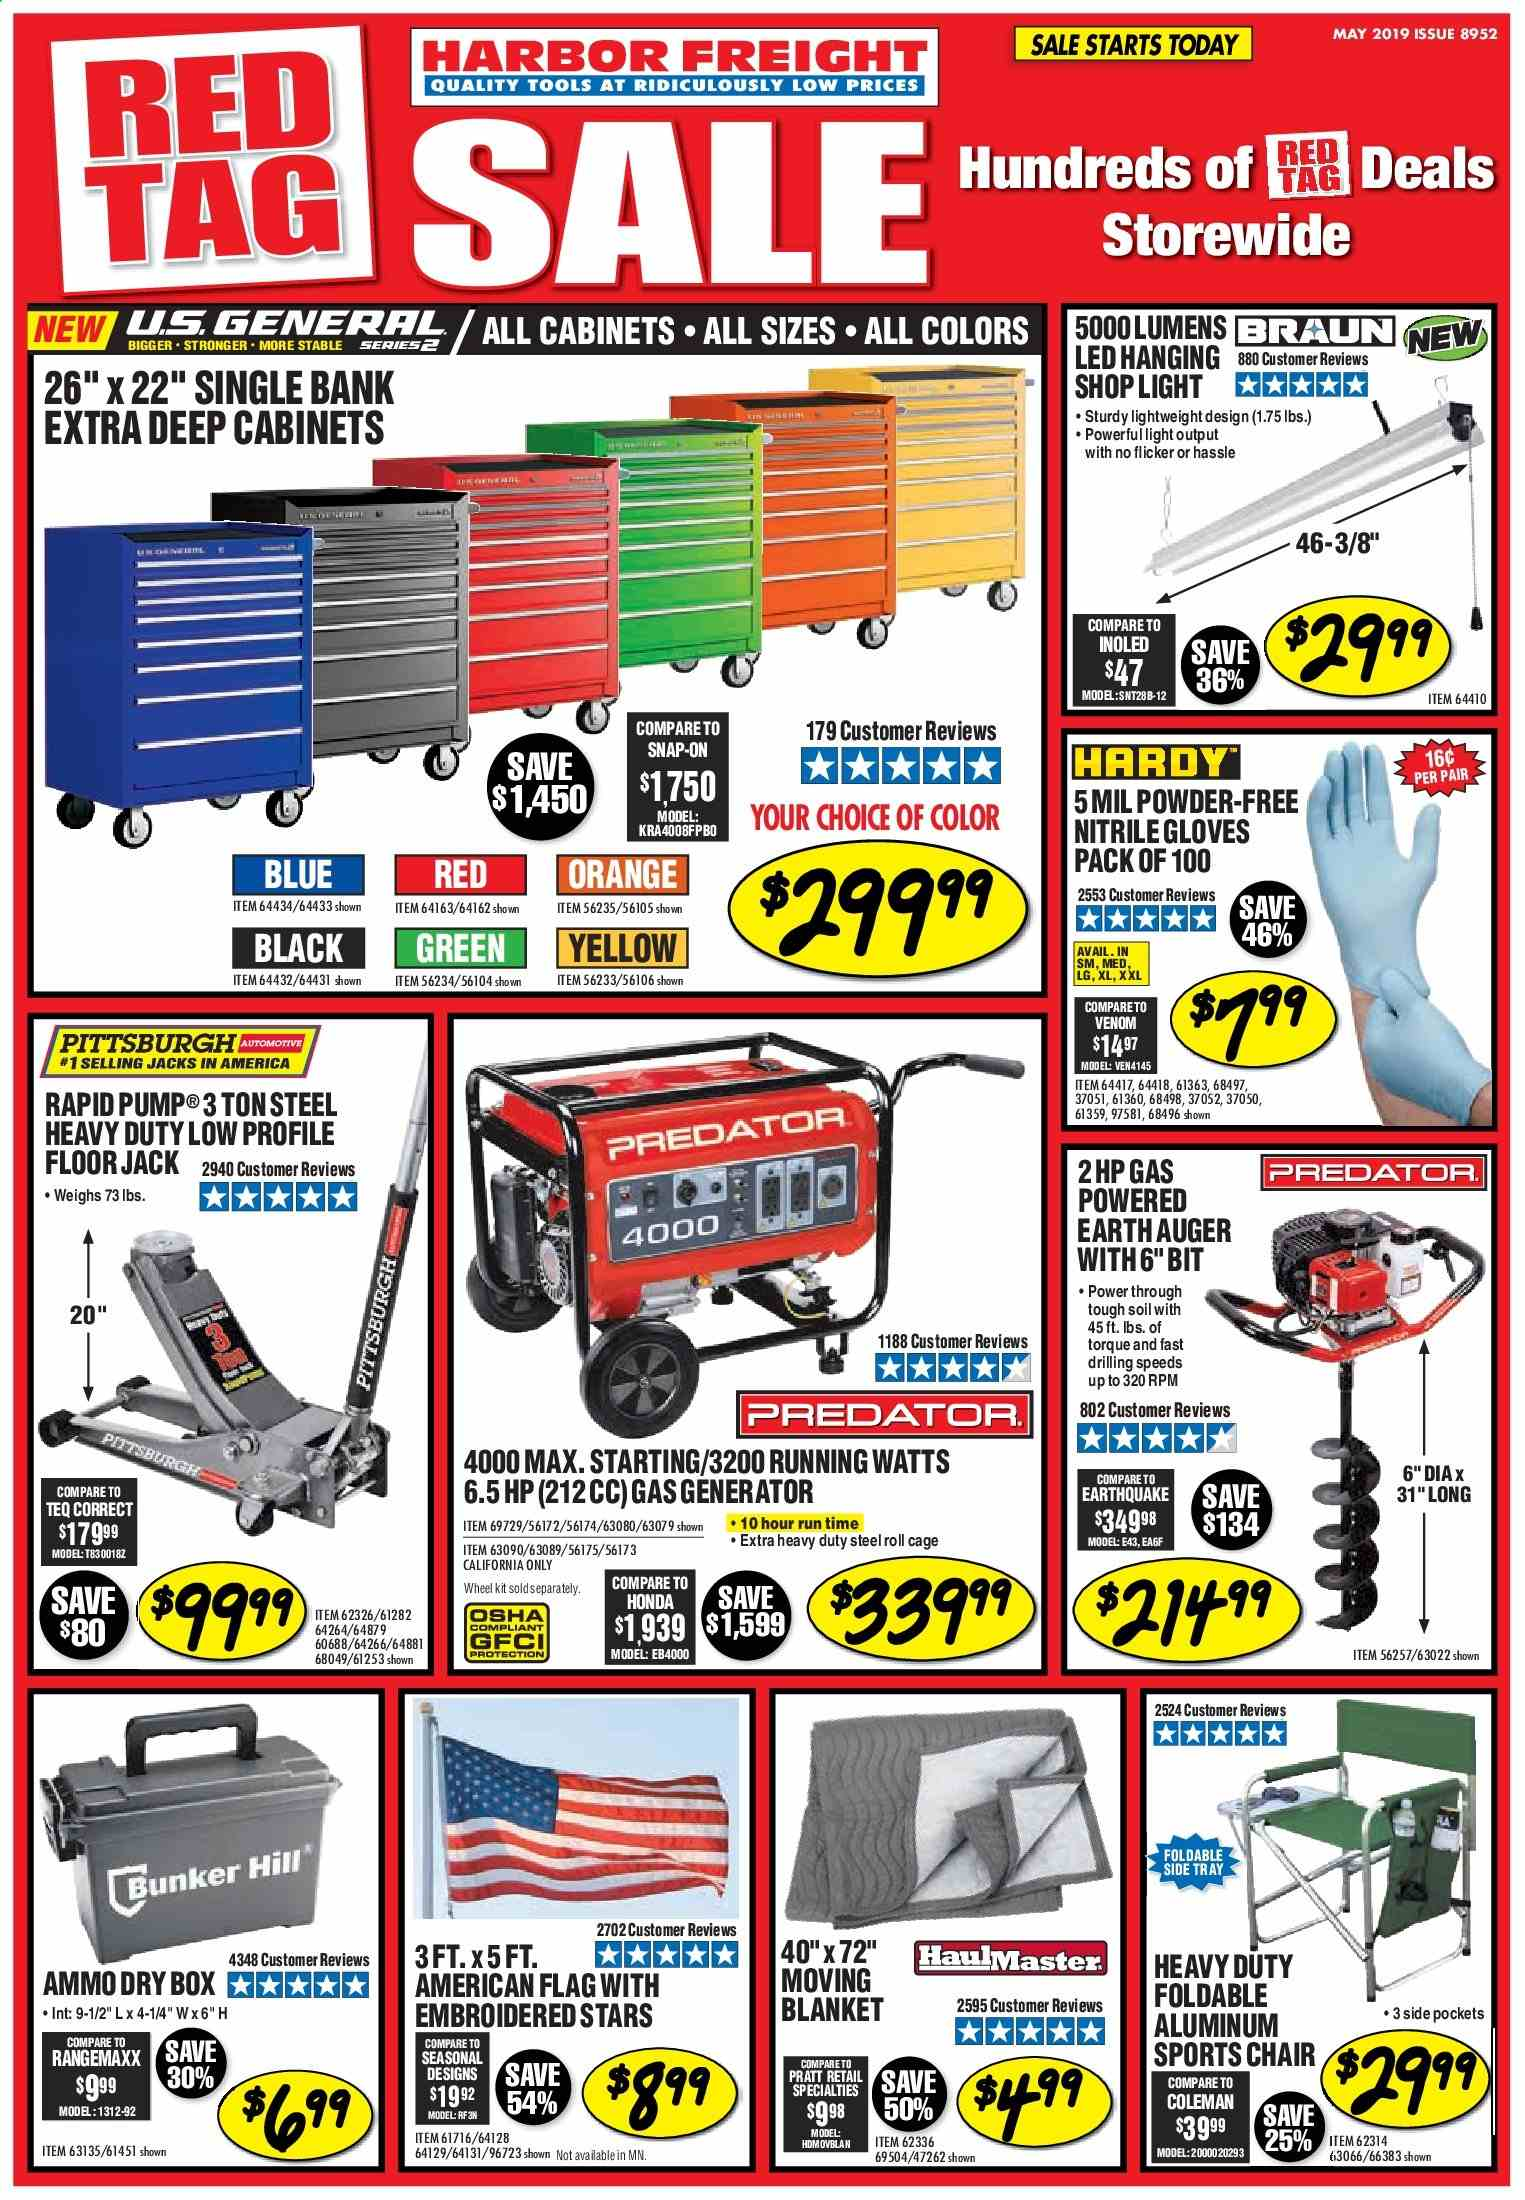 Harbor Freight Flyer  - 05.01.2019 - 05.31.2019. Page 1.